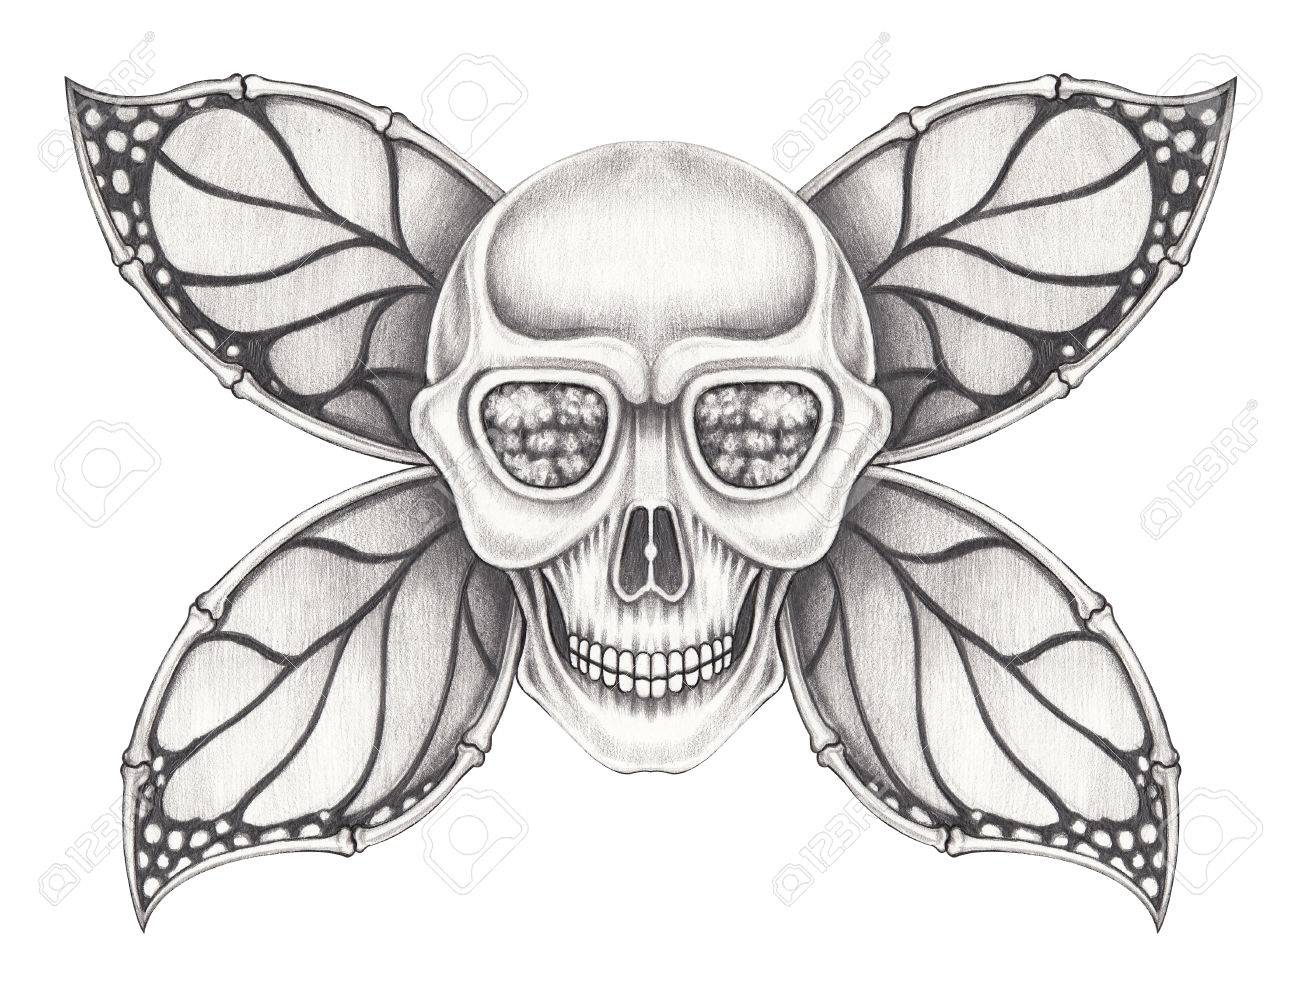 Art wings butterfly skull hand pencil drawing on paper